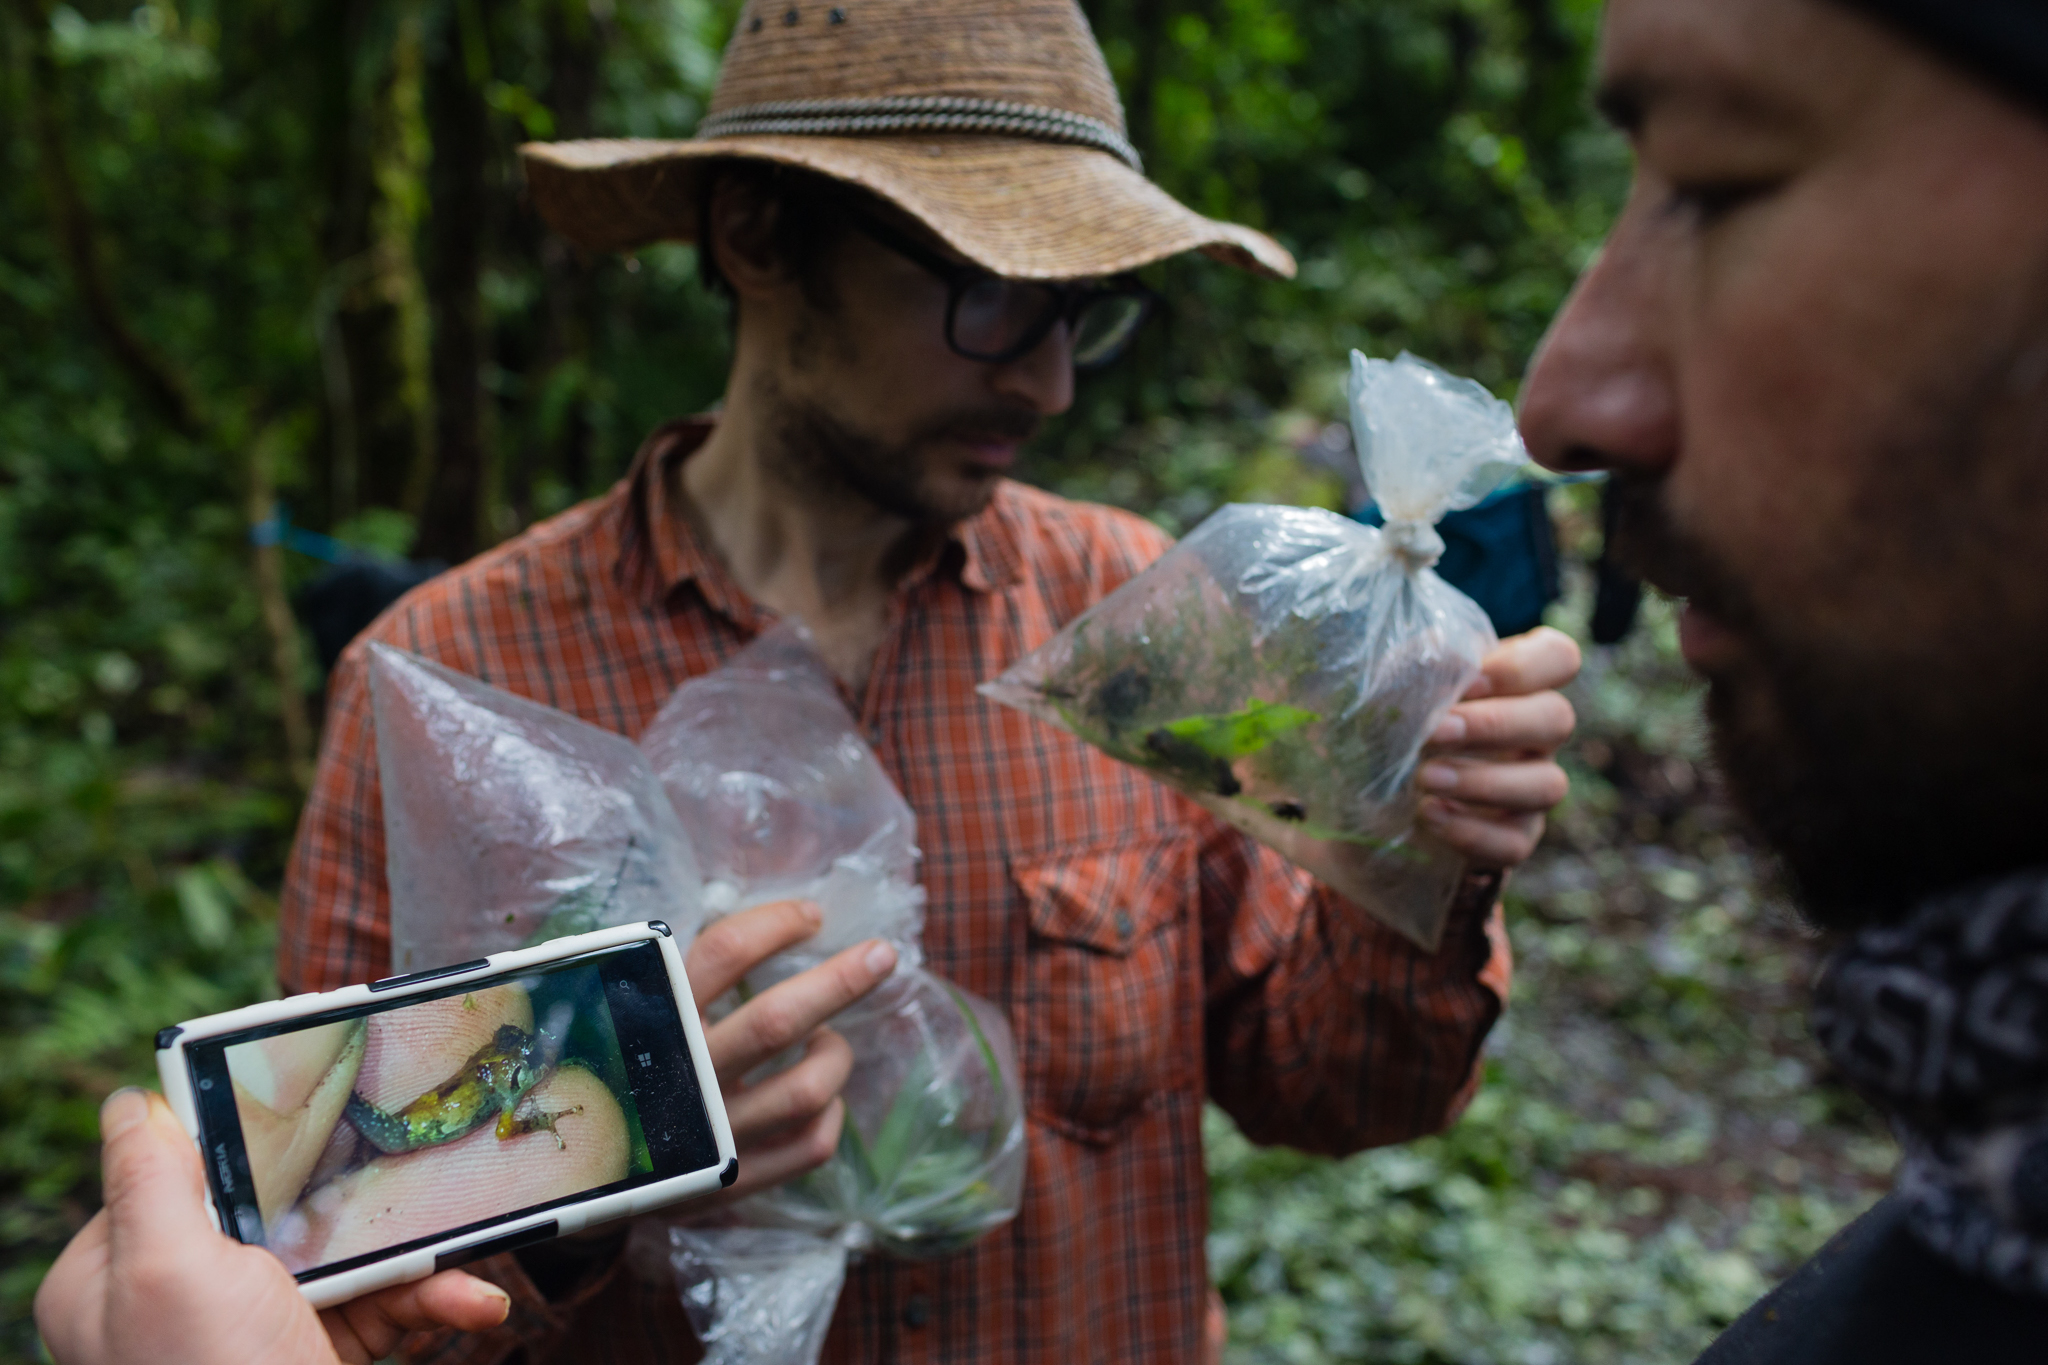 José Padial and Peruvian biologist Juan Carlos Chaparro examines specimens of a potential new species of frog just collected. Photo by Andy Isaacson.